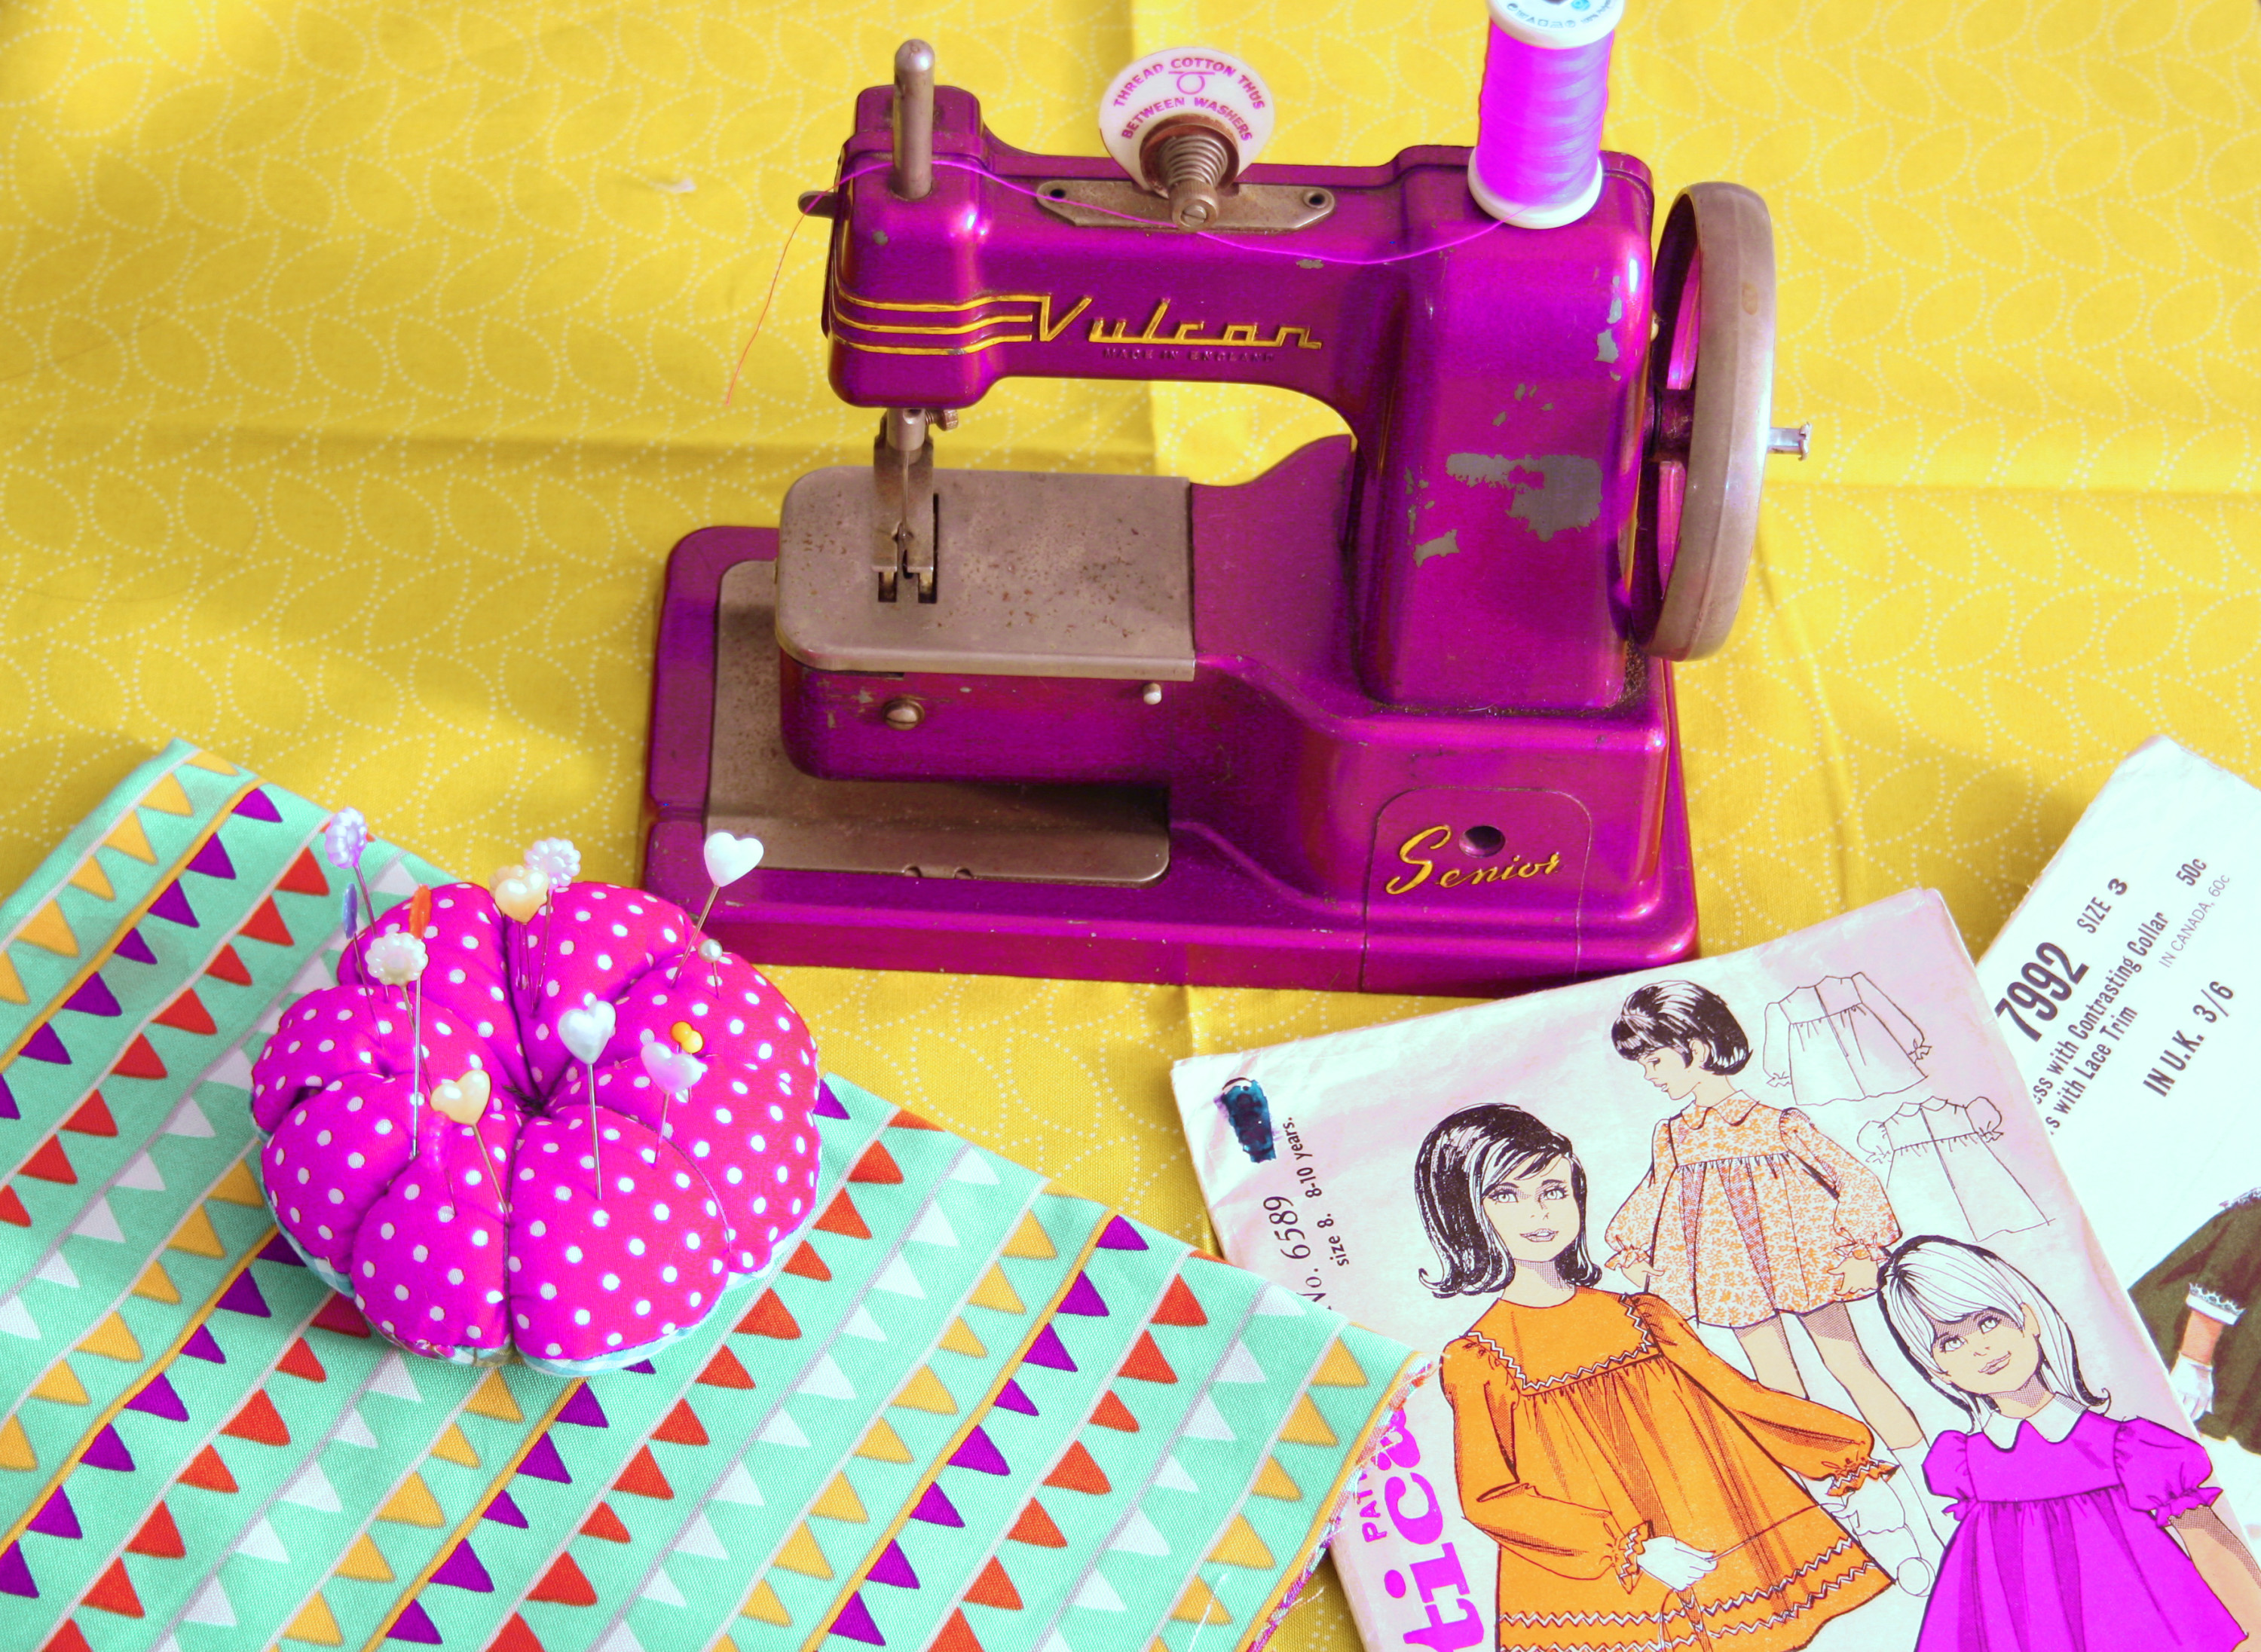 Repair Services (machines, quilts, clothes)